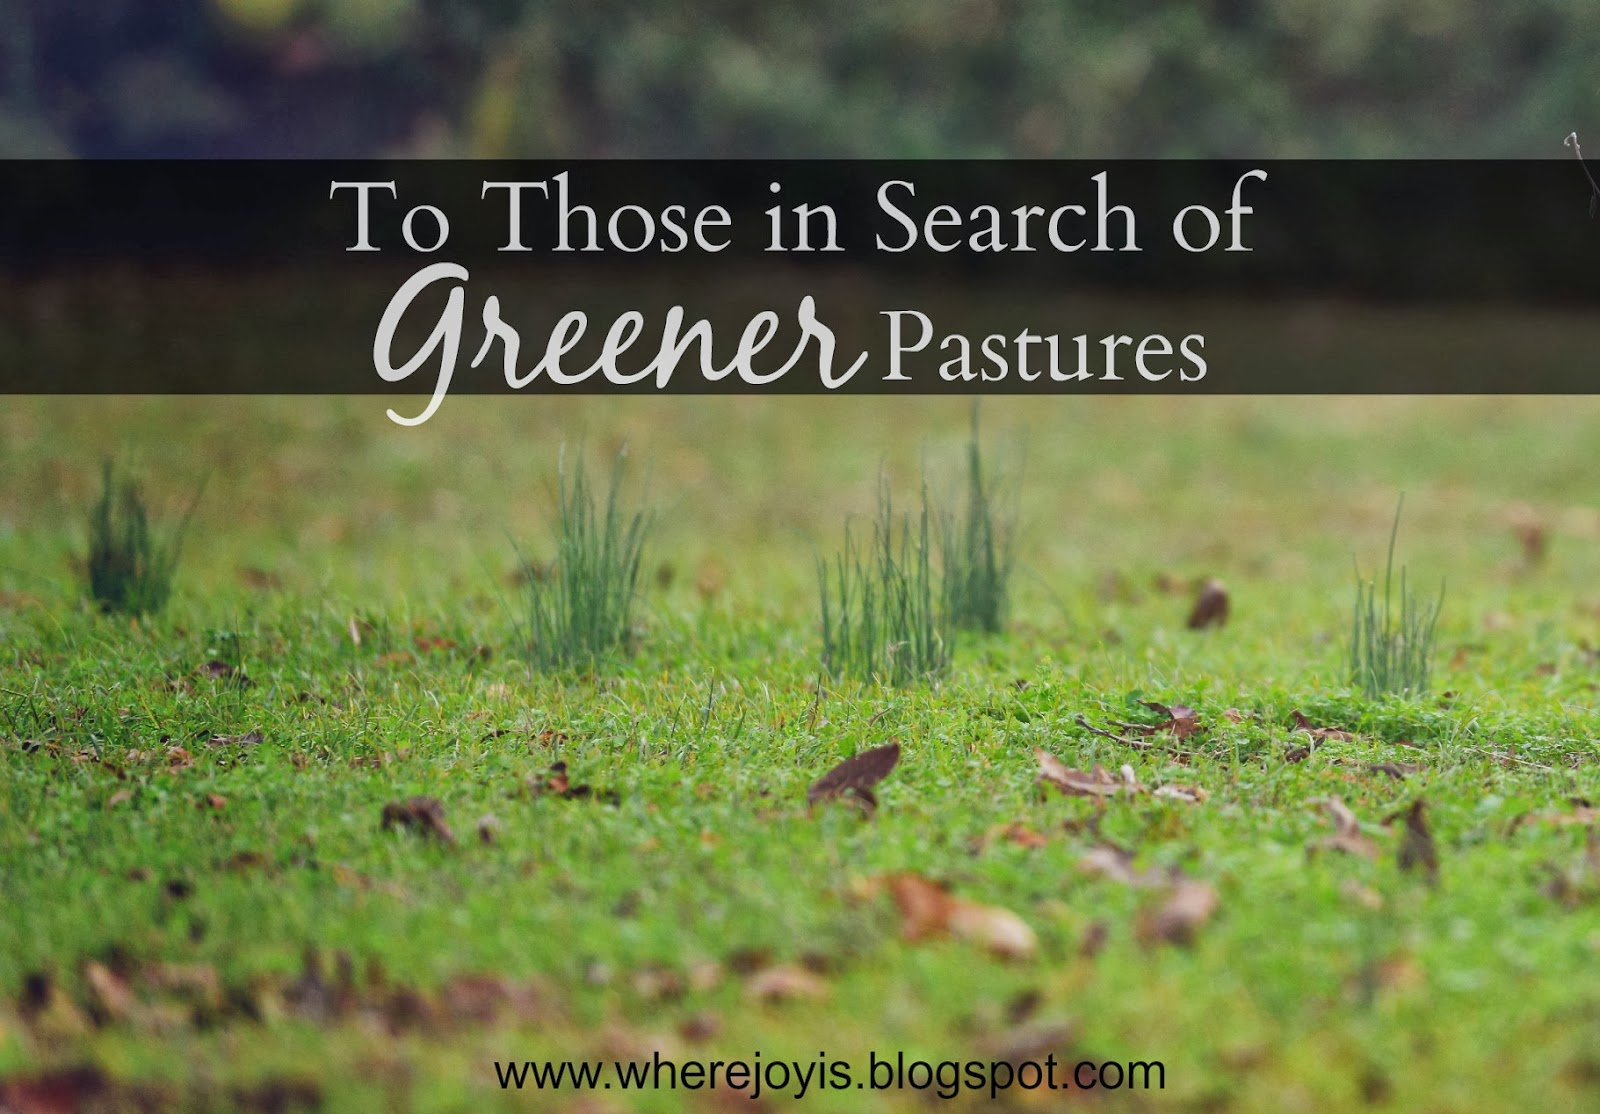 Greener pastures - Idioms by The Free Dictionary